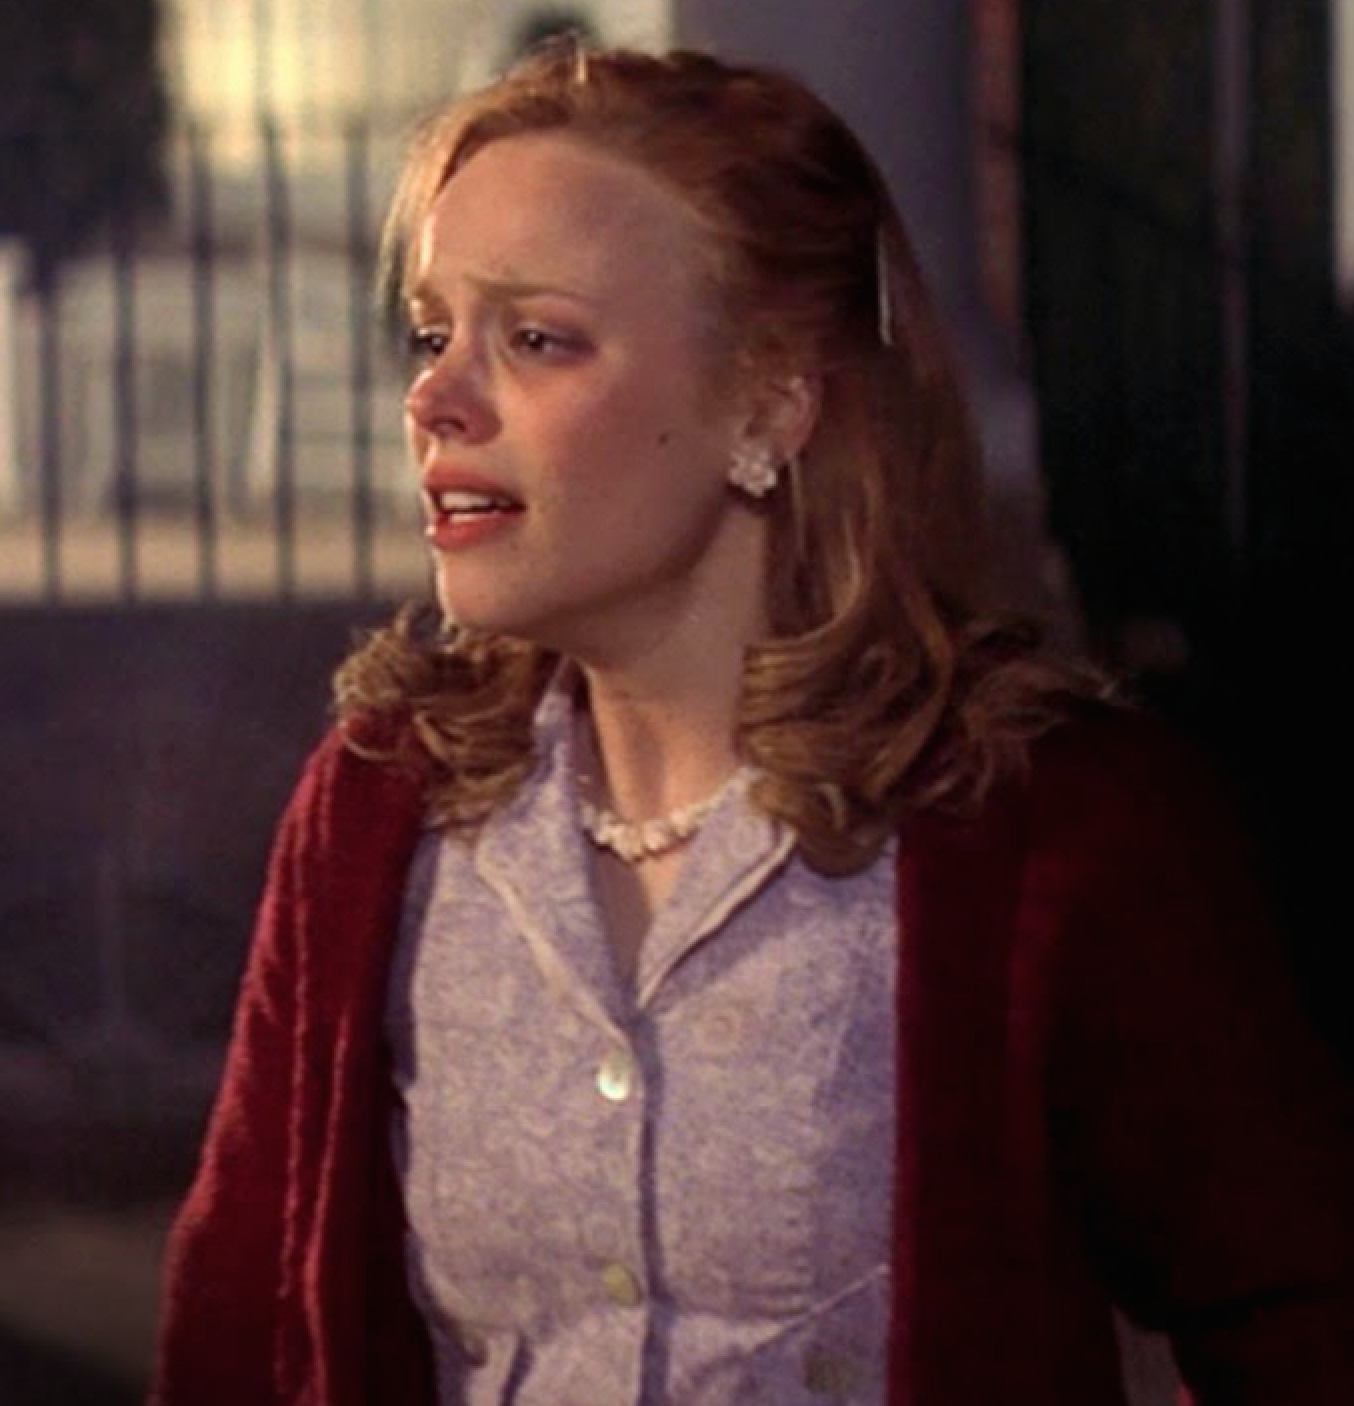 30+ Facts About 'The Notebook' Every Fan Needs to Know